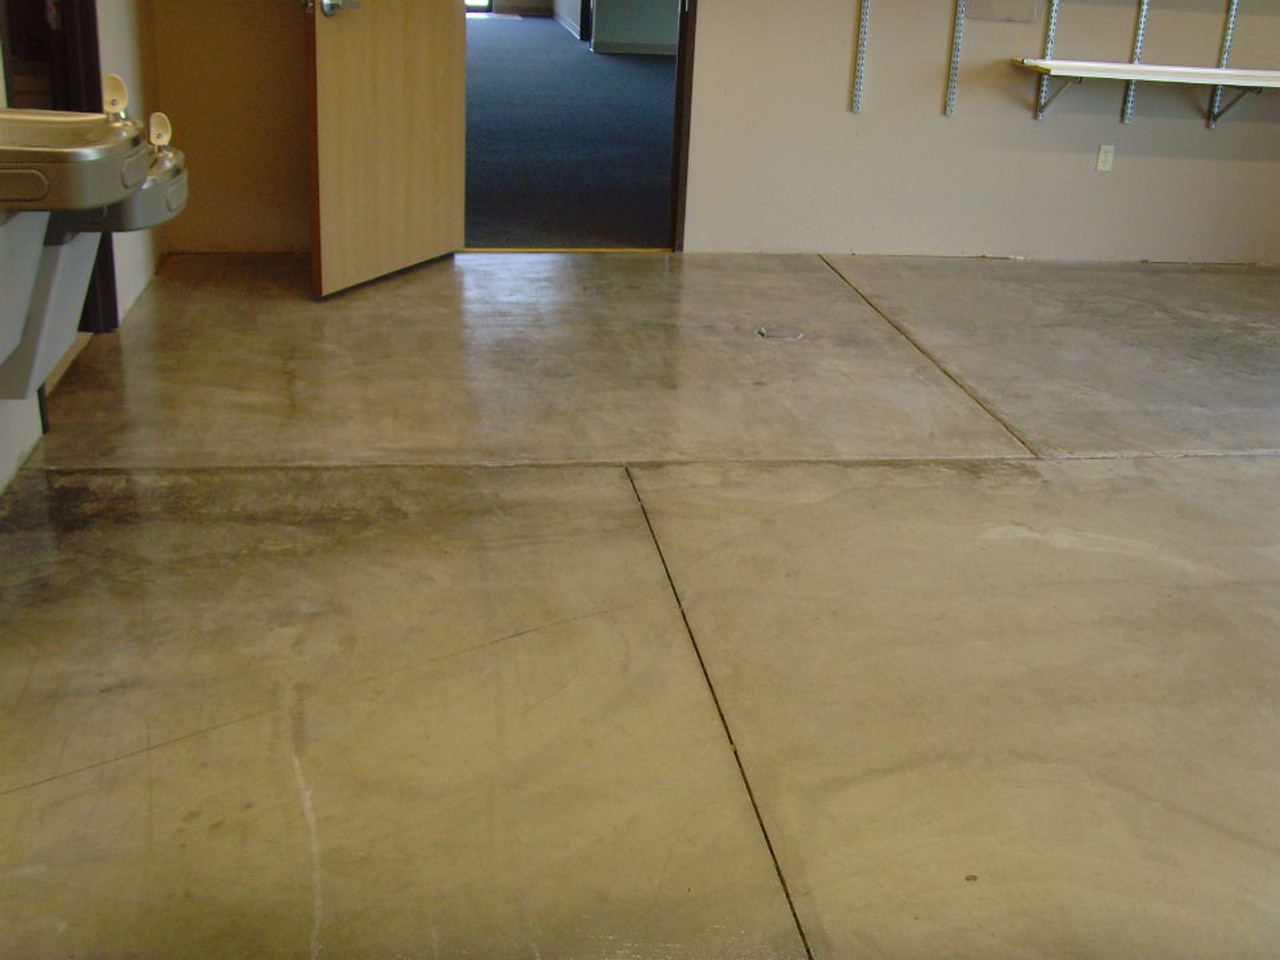 SealGreen E10 Epoxy sealer is used to seal plain concrete and eliminate dusty conditiions